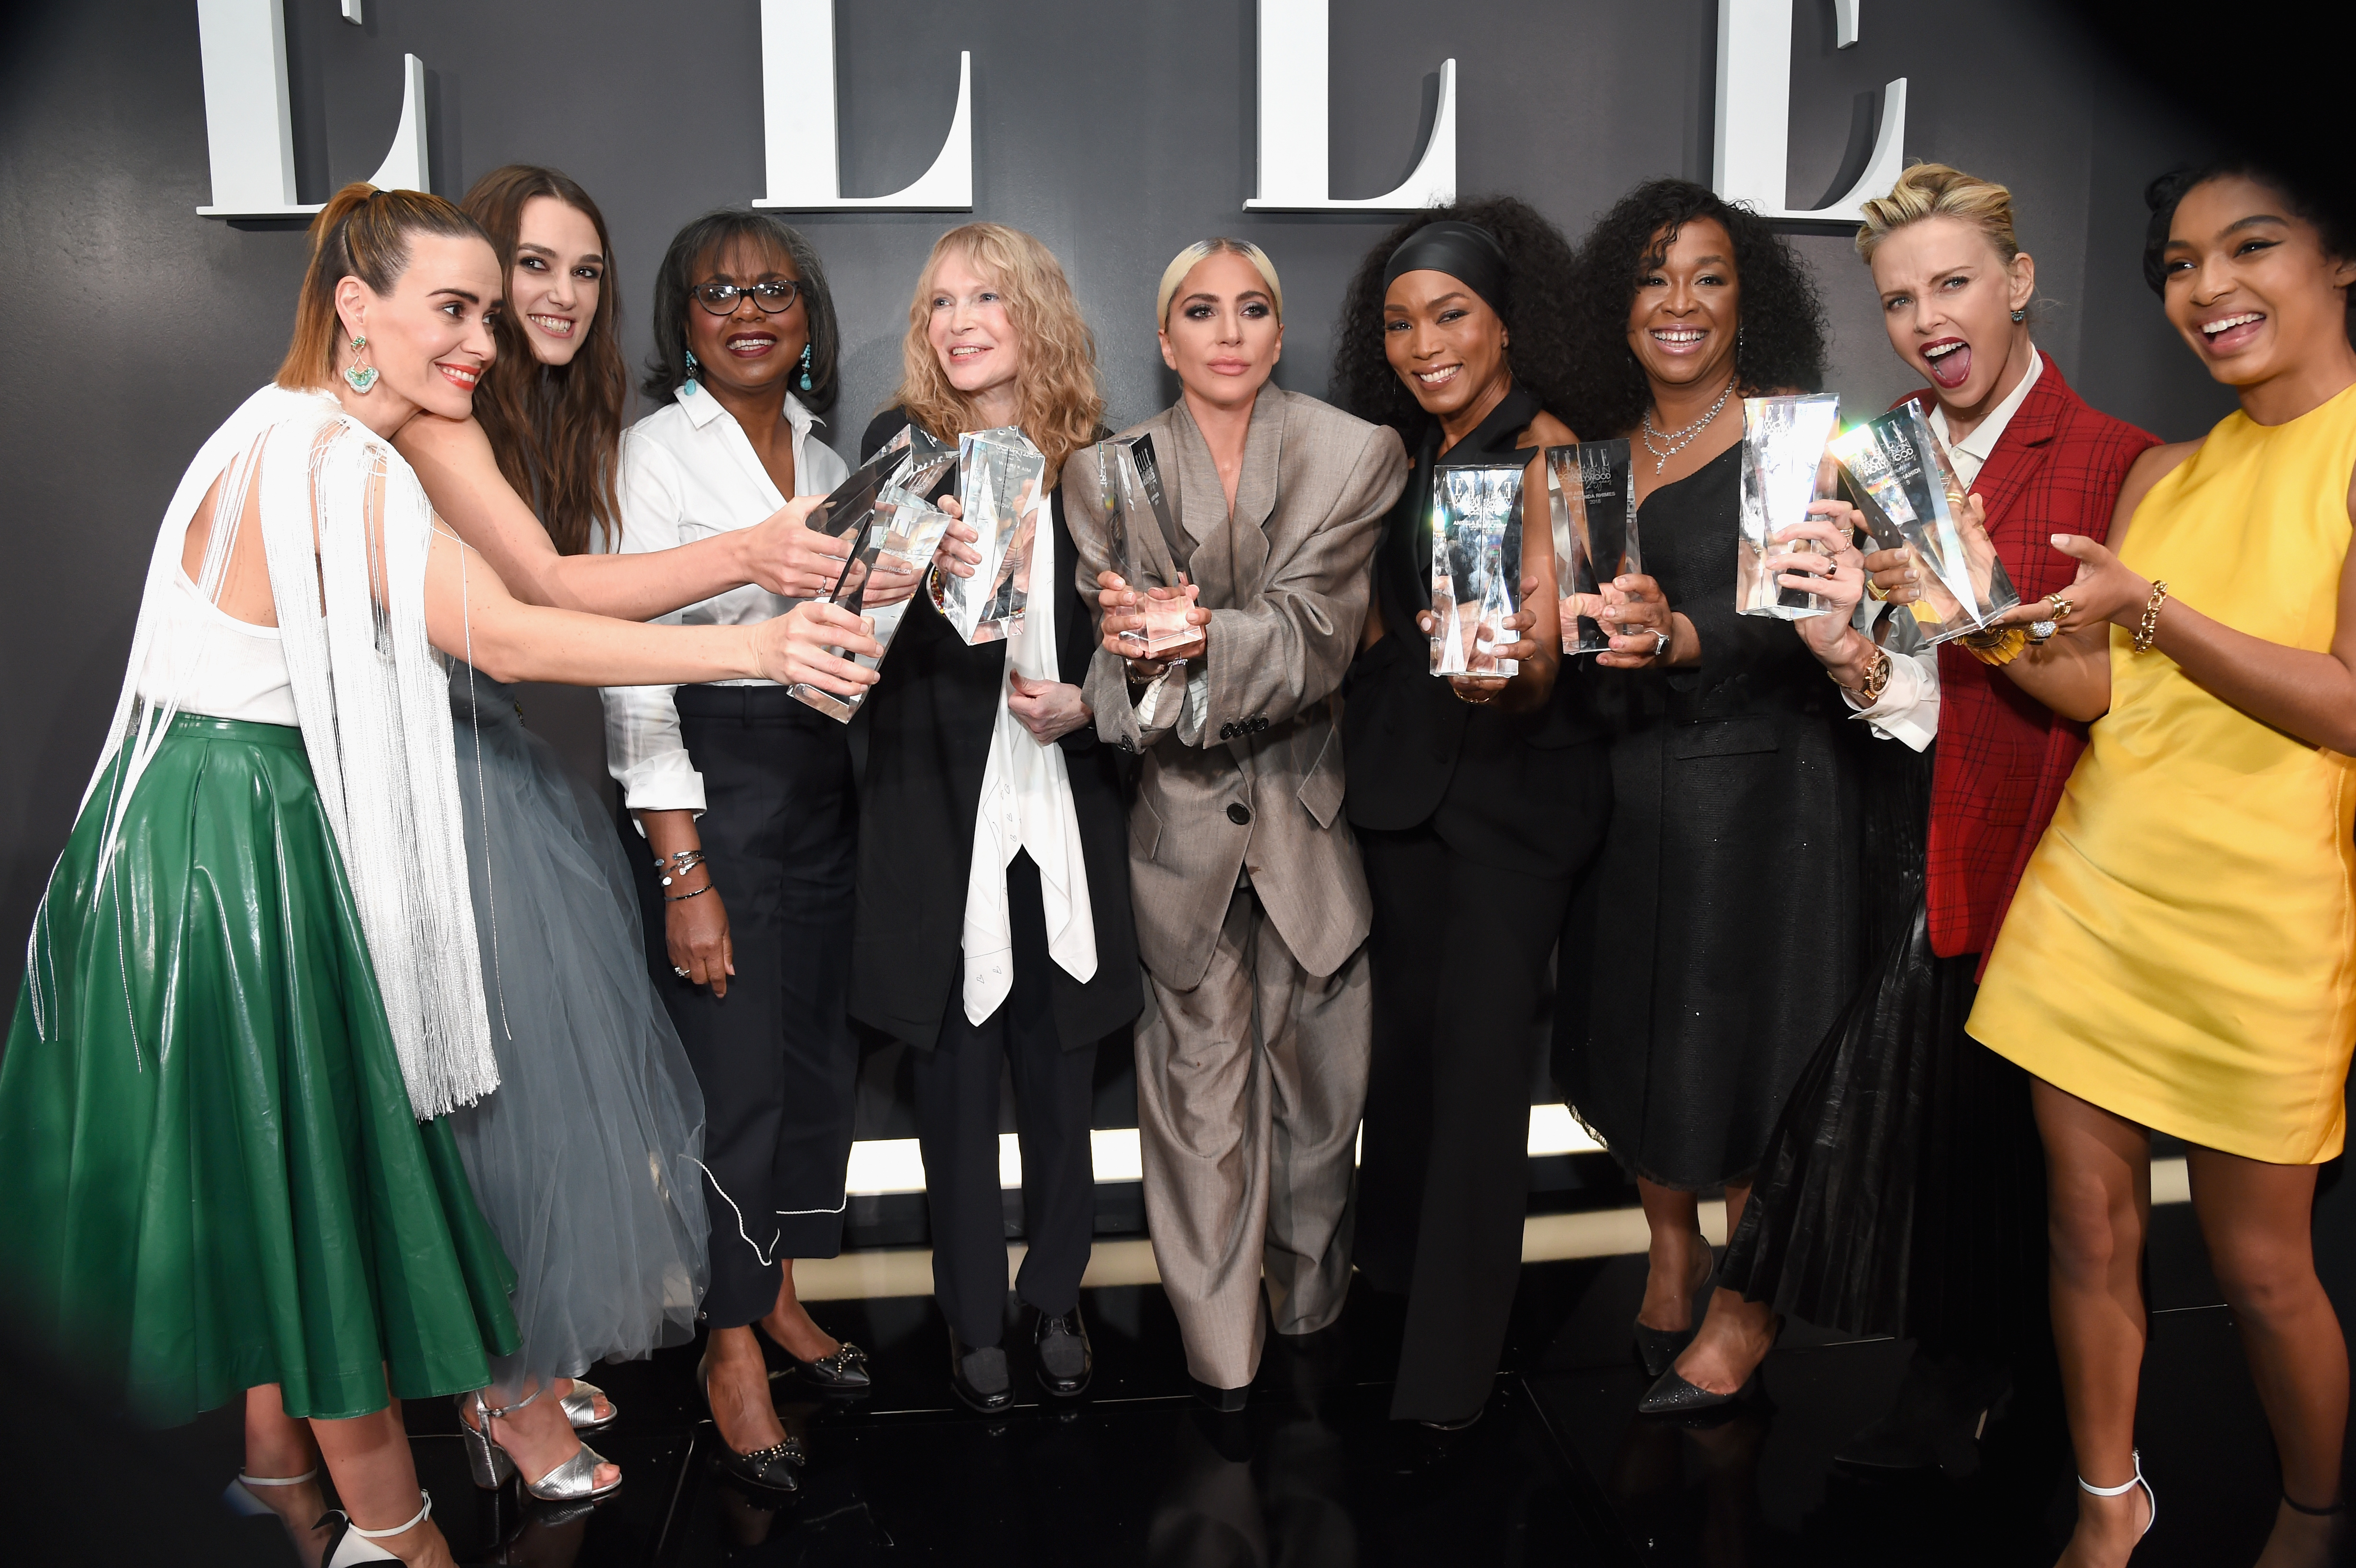 LOS ANGELES, CA - OCTOBER 15:  (L-R) Sarah Paulson, Keira Knightley, Anita Hill, Mia Farrow, Lady Gaga, Angela Bassett, Shonda Rhimes, Charlize Theron and Yara Shahidi attend ELLE's 25th Annual Women In Hollywood Celebration presented by L'Oreal Paris, Hearts On Fire and CALVIN KLEIN at Four Seasons Hotel Los Angeles at Beverly Hills on October 15, 2018 in Los Angeles, California.  (Photo by Michael Kovac/Getty Images for ELLE Magazine)